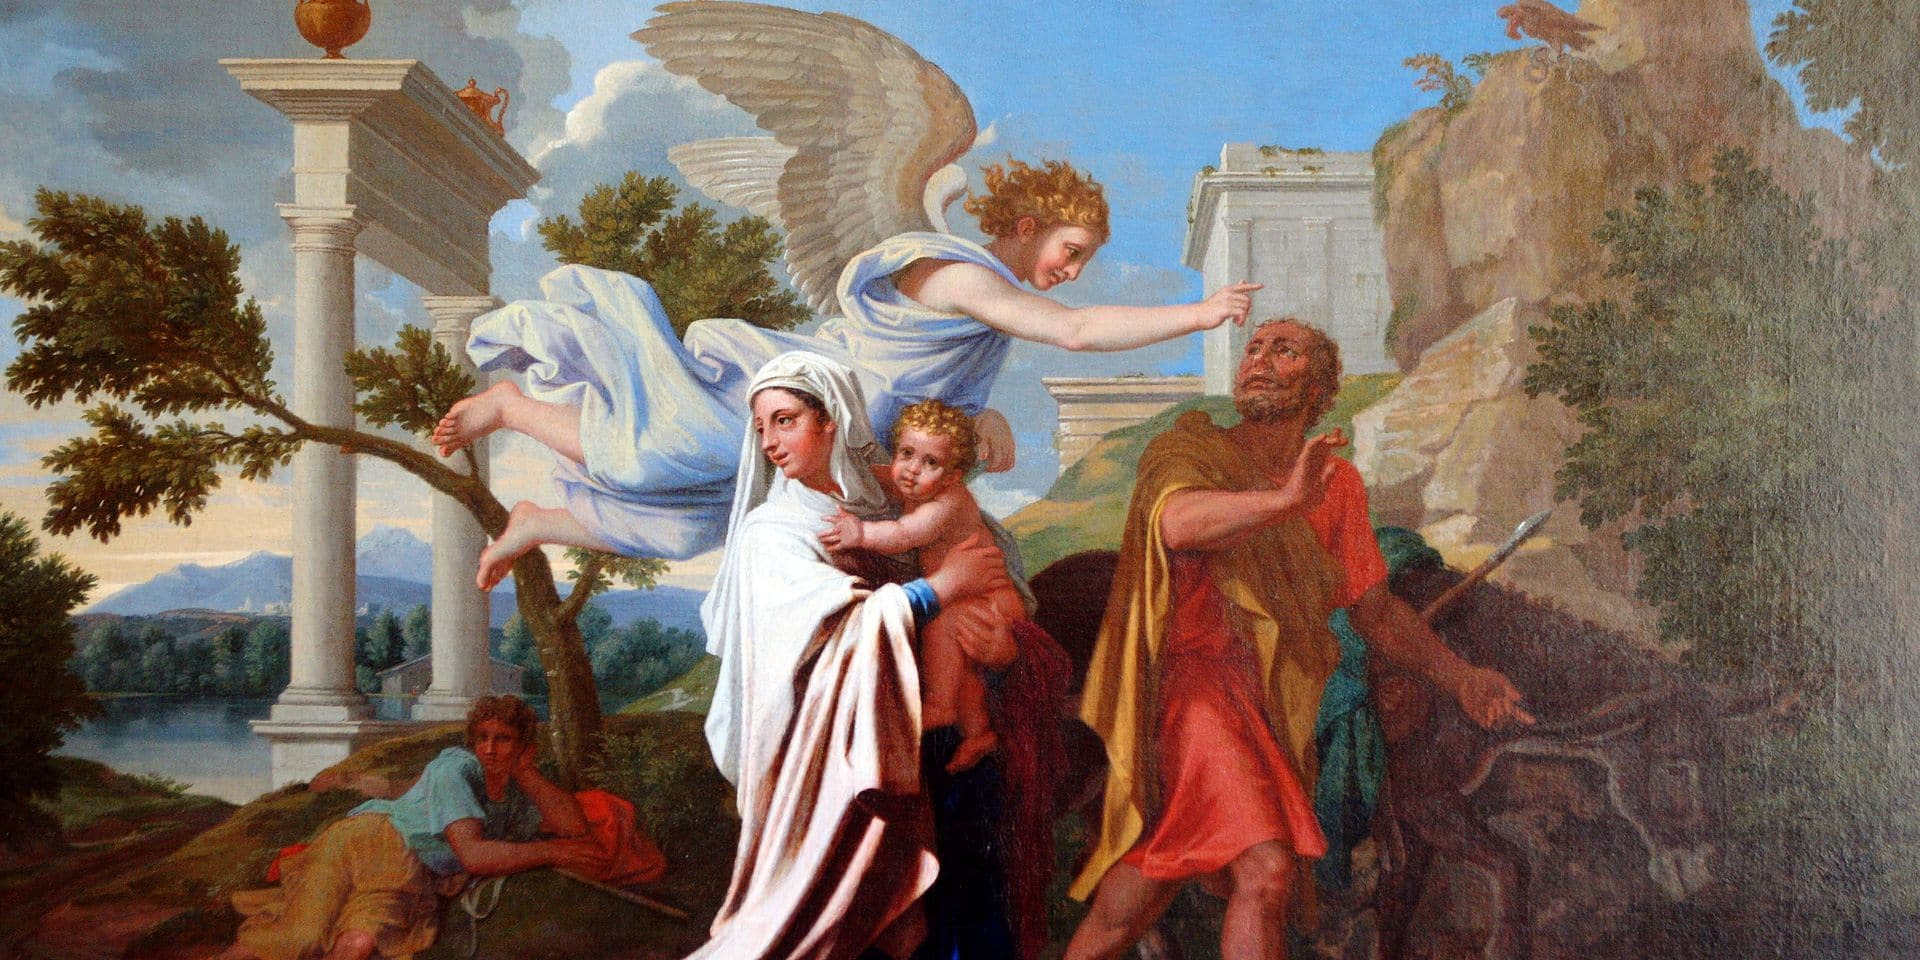 """A picture taken 18 July 2007 at the Louvre museum in Paris, shows the painting """"La Fuite en Egypte"""" (The Flight into Egypt) by French baroque painter Nicolas Poussin (1594-1665), during a press presentation, 18 July 2007 at Le Louvre museum in Paris. The piece, listed as national treasure, was bought back by the French State with sponsors for the Louvre museum and will be on show at the Beaux Arts Lyon museum. AFP PHOTO FRANCOIS GUILLOT / AFP PHOTO / FRANCOIS GUILLOT"""